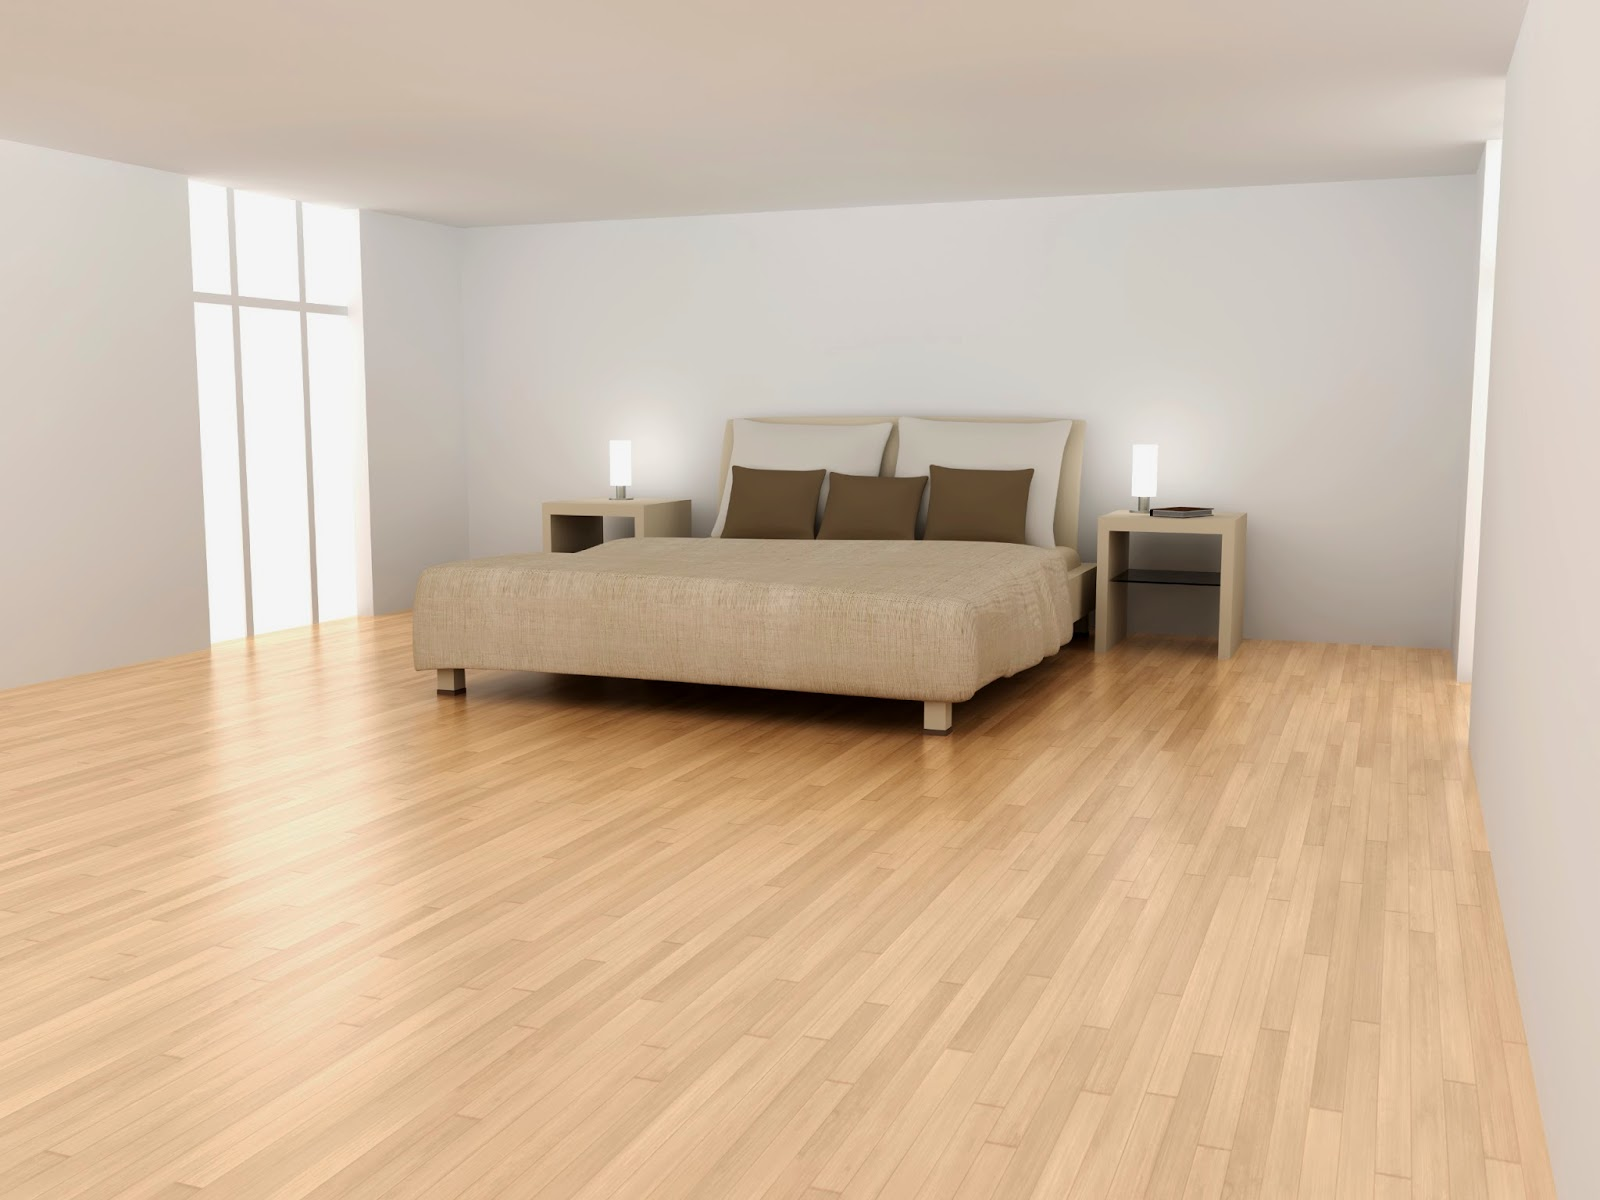 JCB Interiors: Bedroom Flooring: Carpet Vs. Hardwood